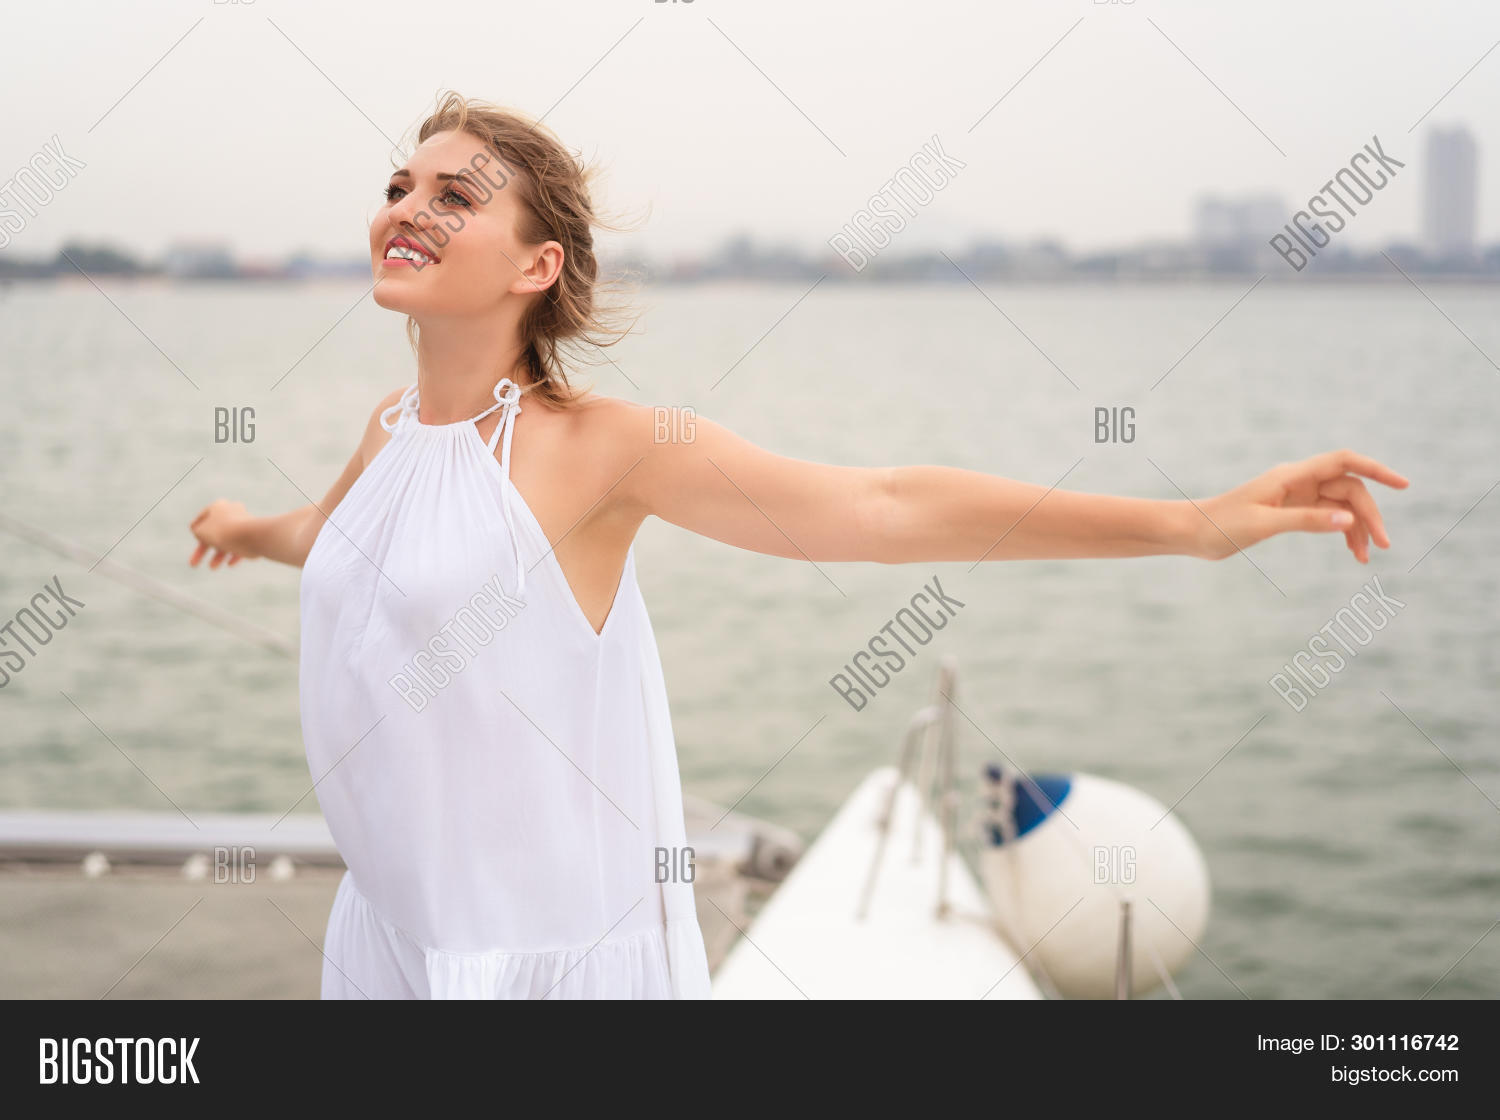 arms,attractive,background,beautiful,beauty,blue,boat,carefree,casual,caucasian,cheerful,cruise,enjoying,female,free,freedom,fun,girl,happiness,happy,healthy,holiday,joy,lifestyle,looking,model,nature,nautical,ocean,open,outdoors,people,relax,sailboat,sailing,sea,ship,sky,smile,success,summer,sunny,travel,vacation,voyage,water,white,woman,yacht,young